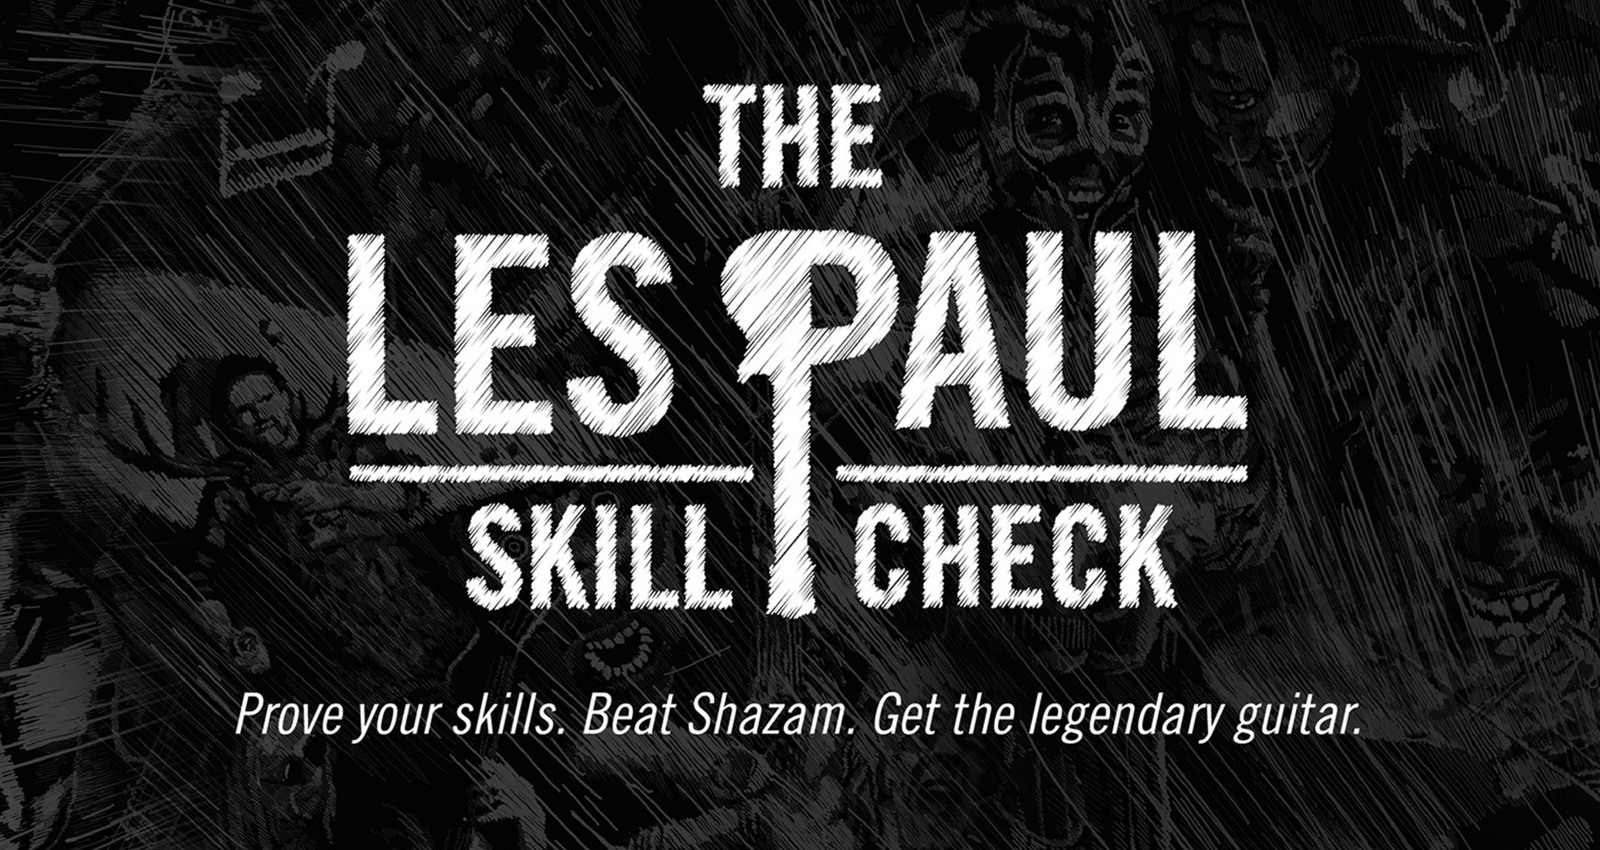 The Les Paul Skill Check